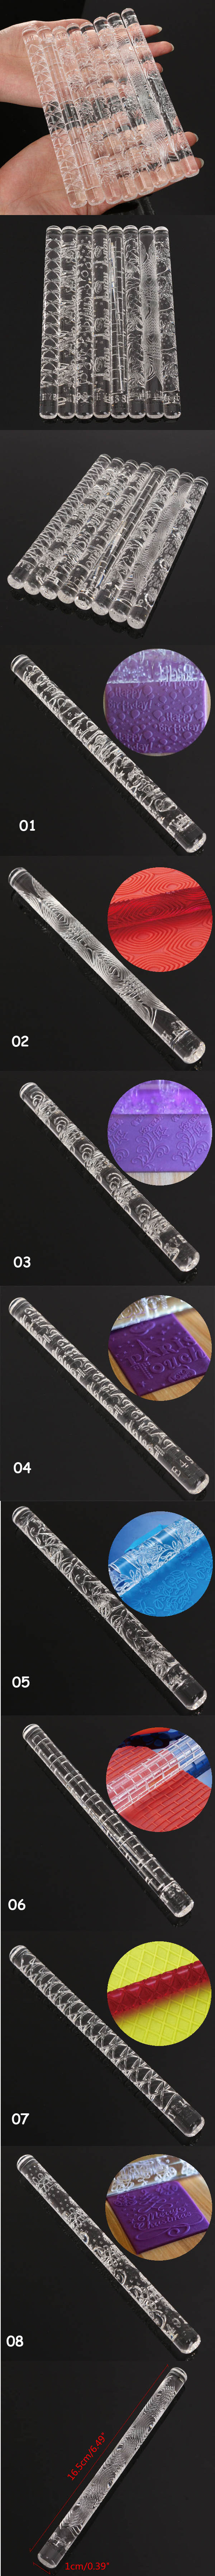 Flower Textured Embossing Acrylic Rolling Pin Fondant Cake Decorating Tool